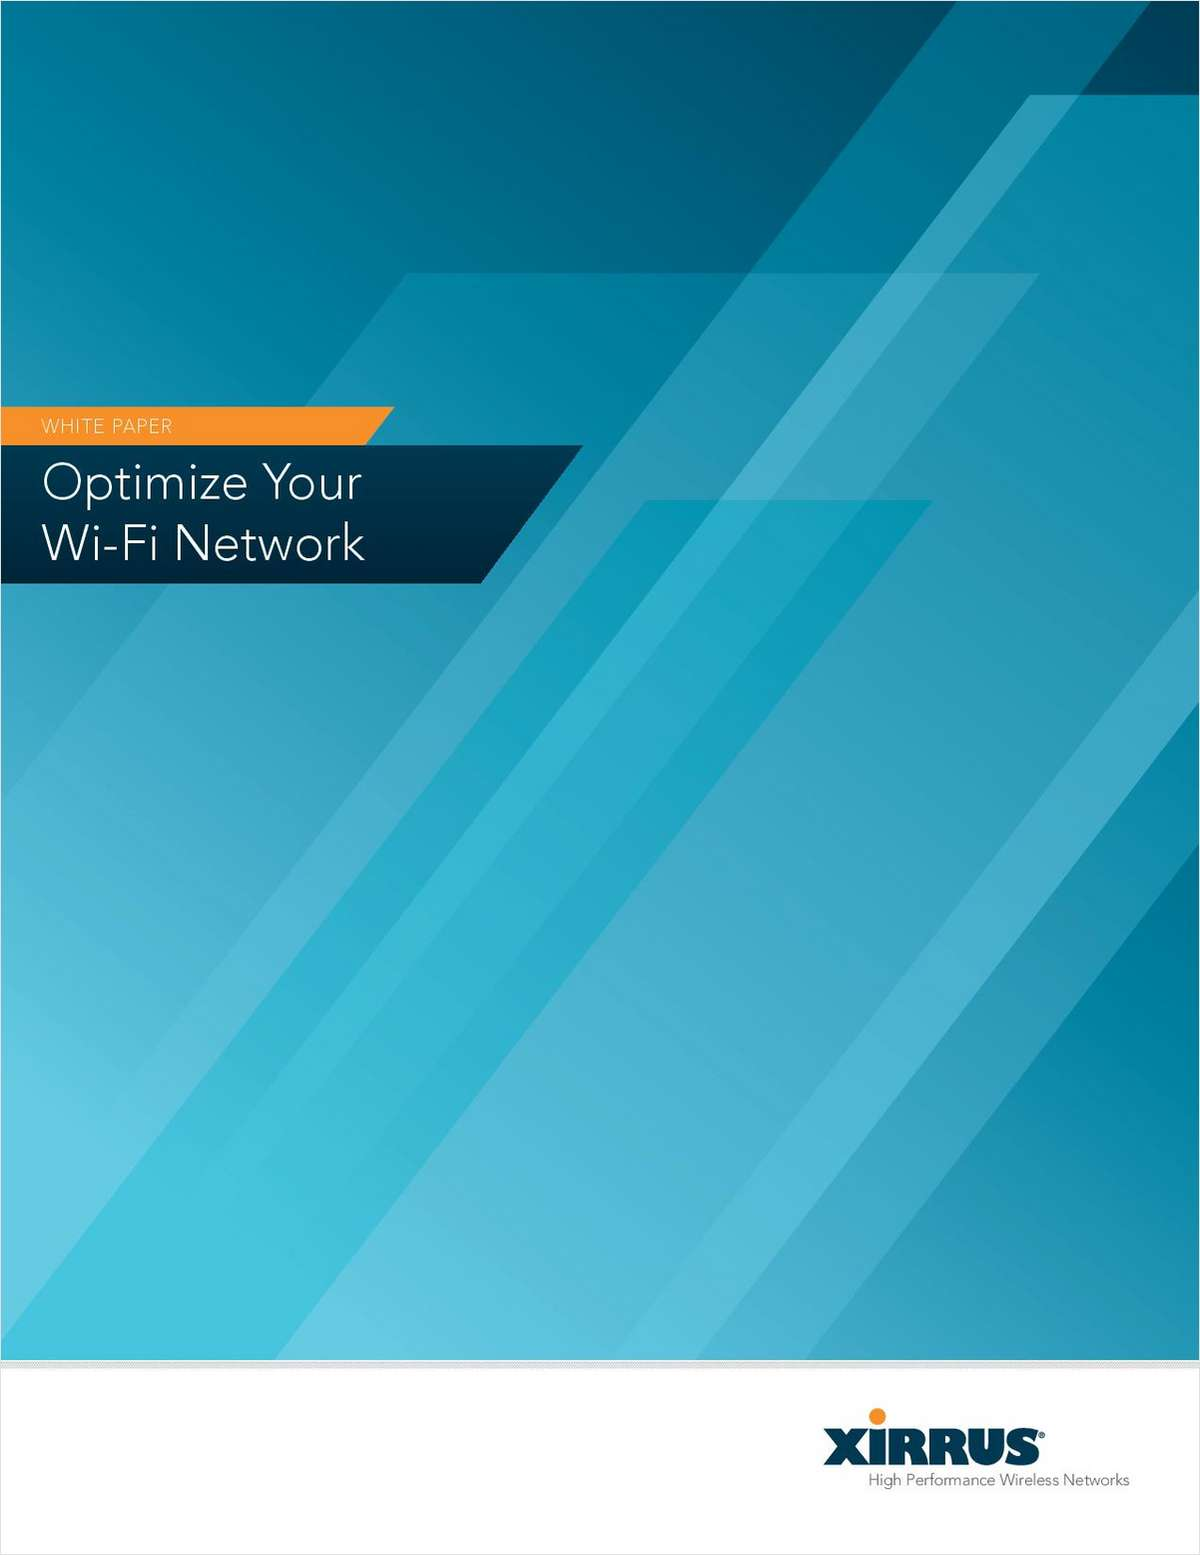 Optimizing Your Wireless Network